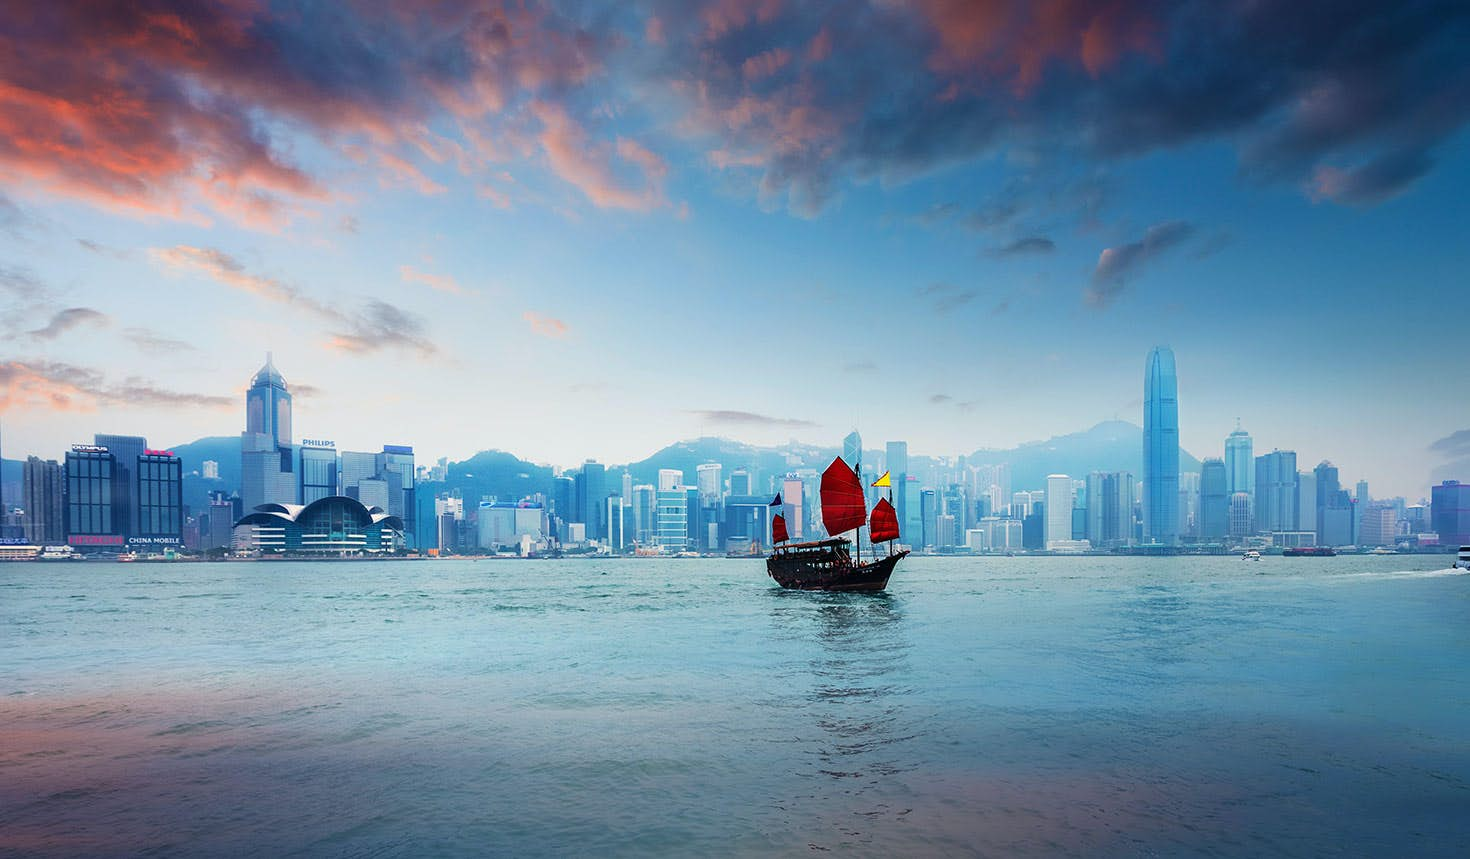 A traditional Chinese junk sailing across Victoria Harbour, Hong Kong © chinaface / Getty Images